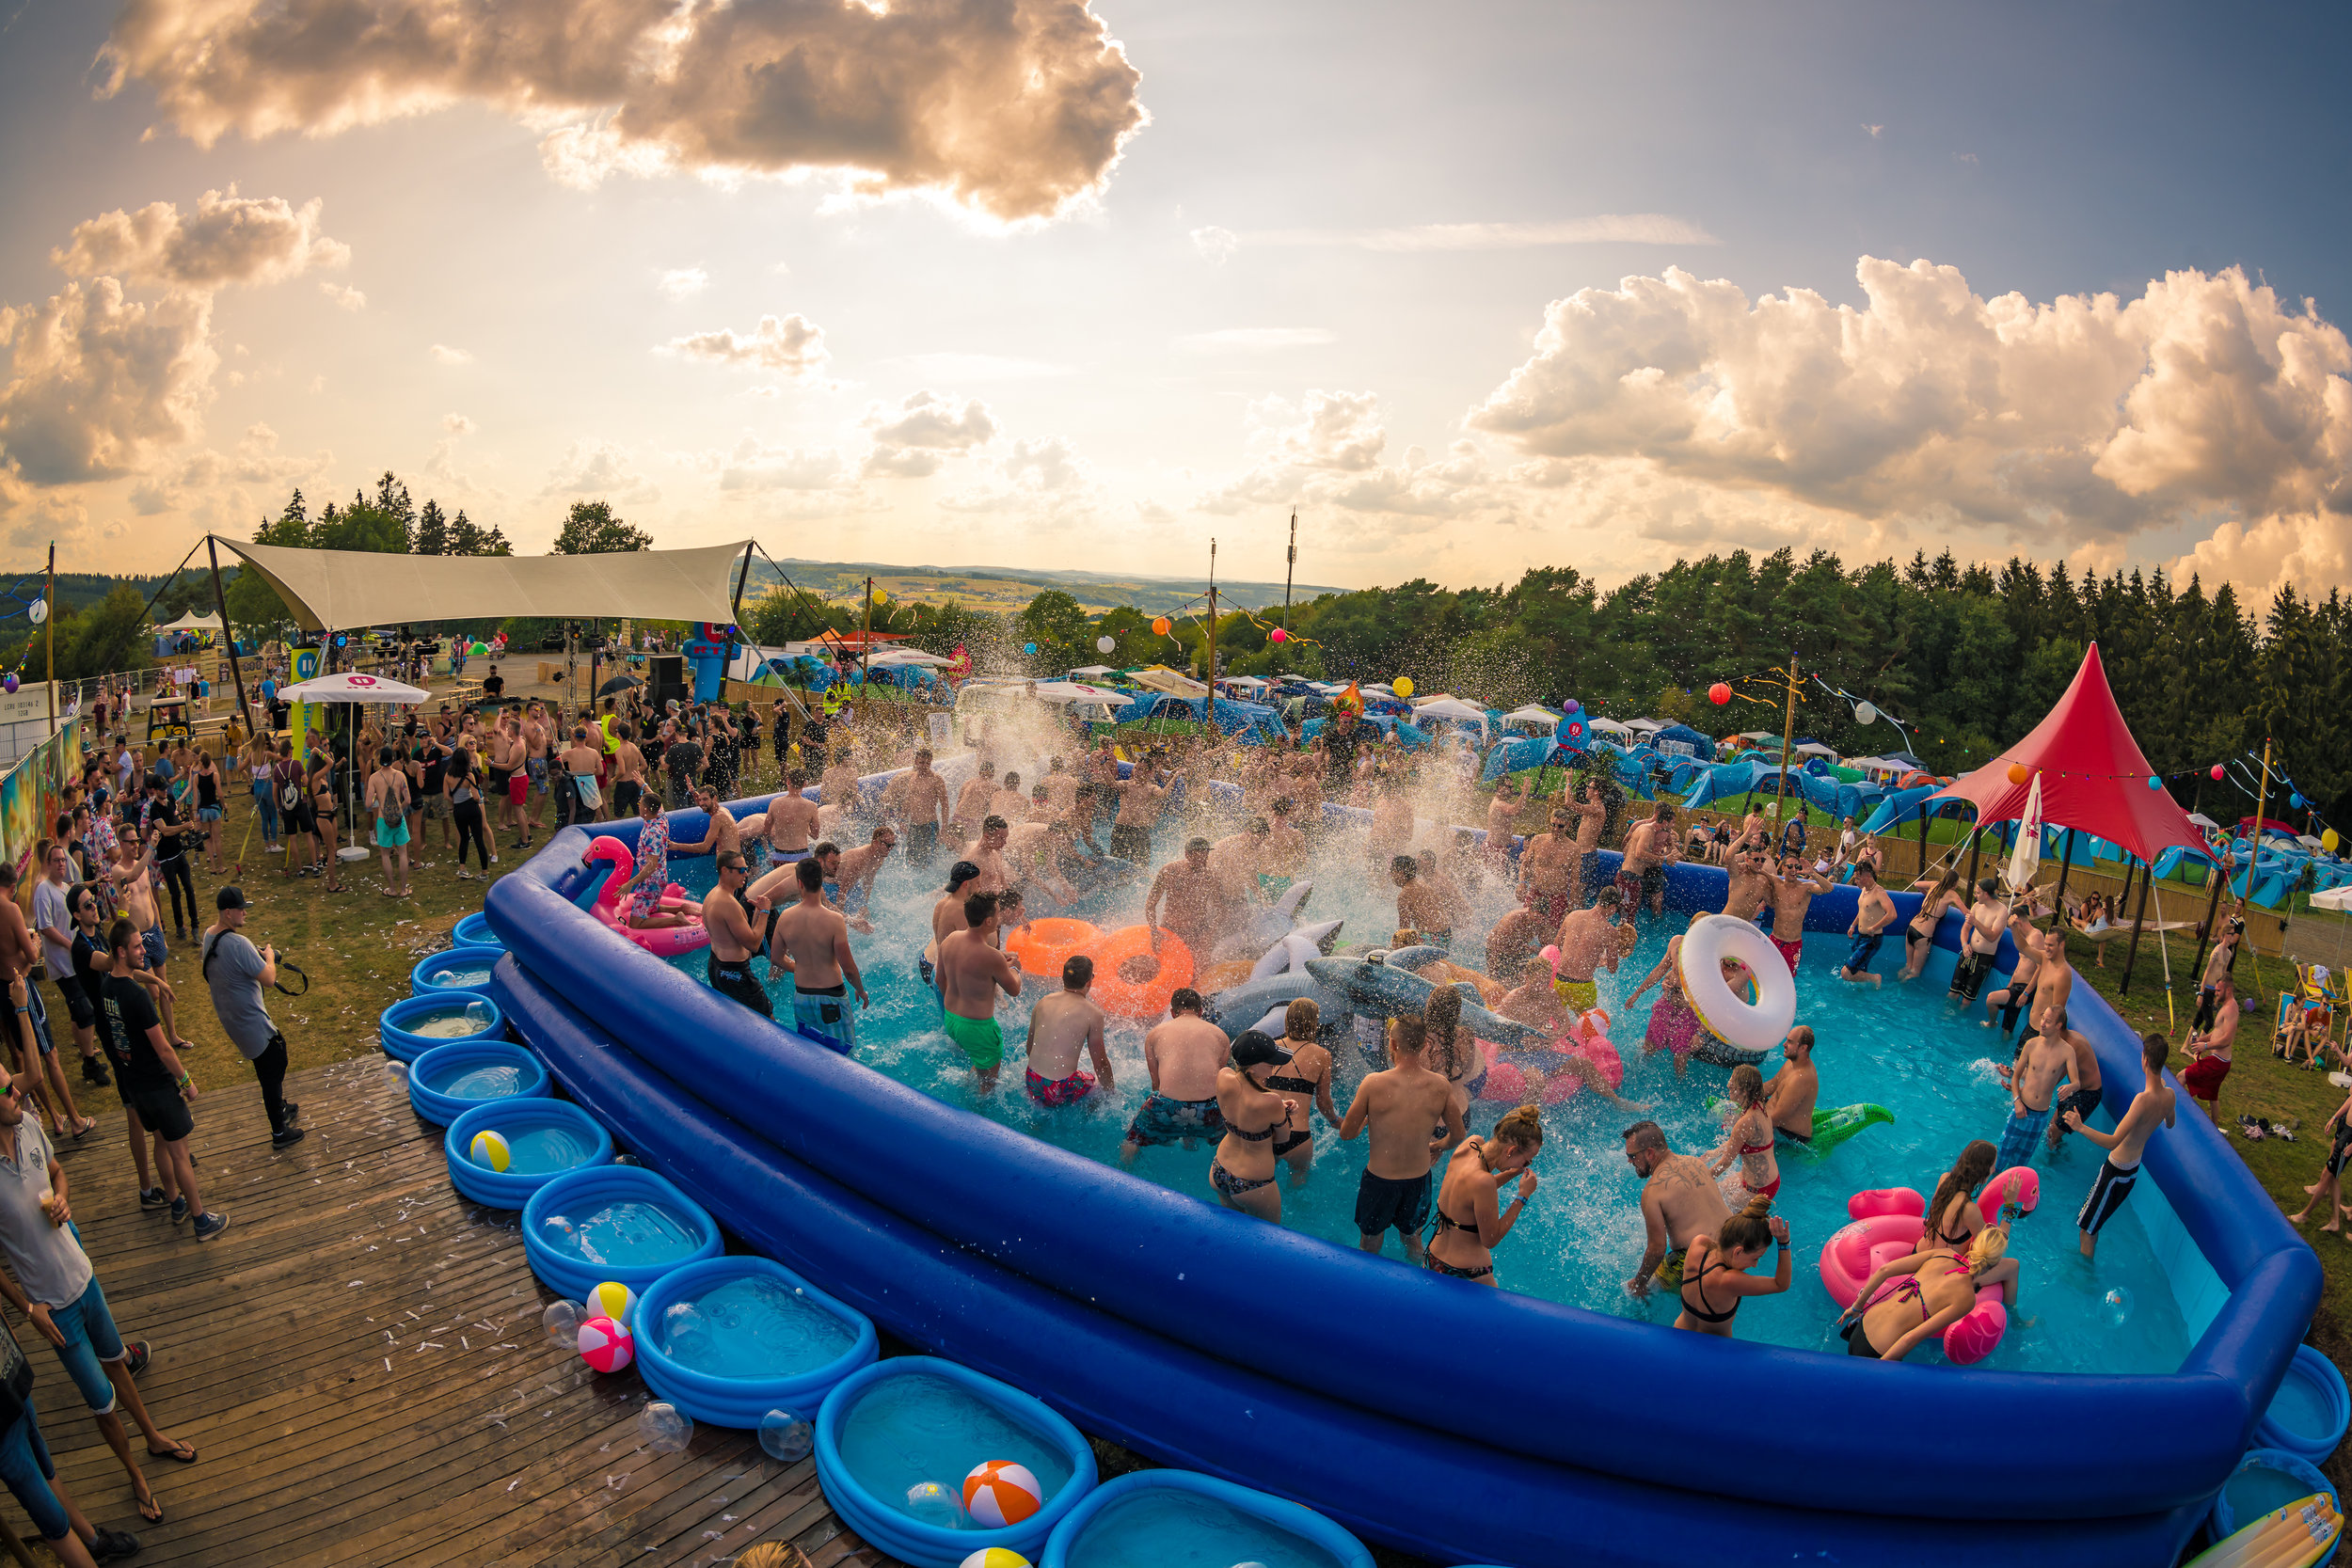 concept-outdoorpoolparty3.jpg